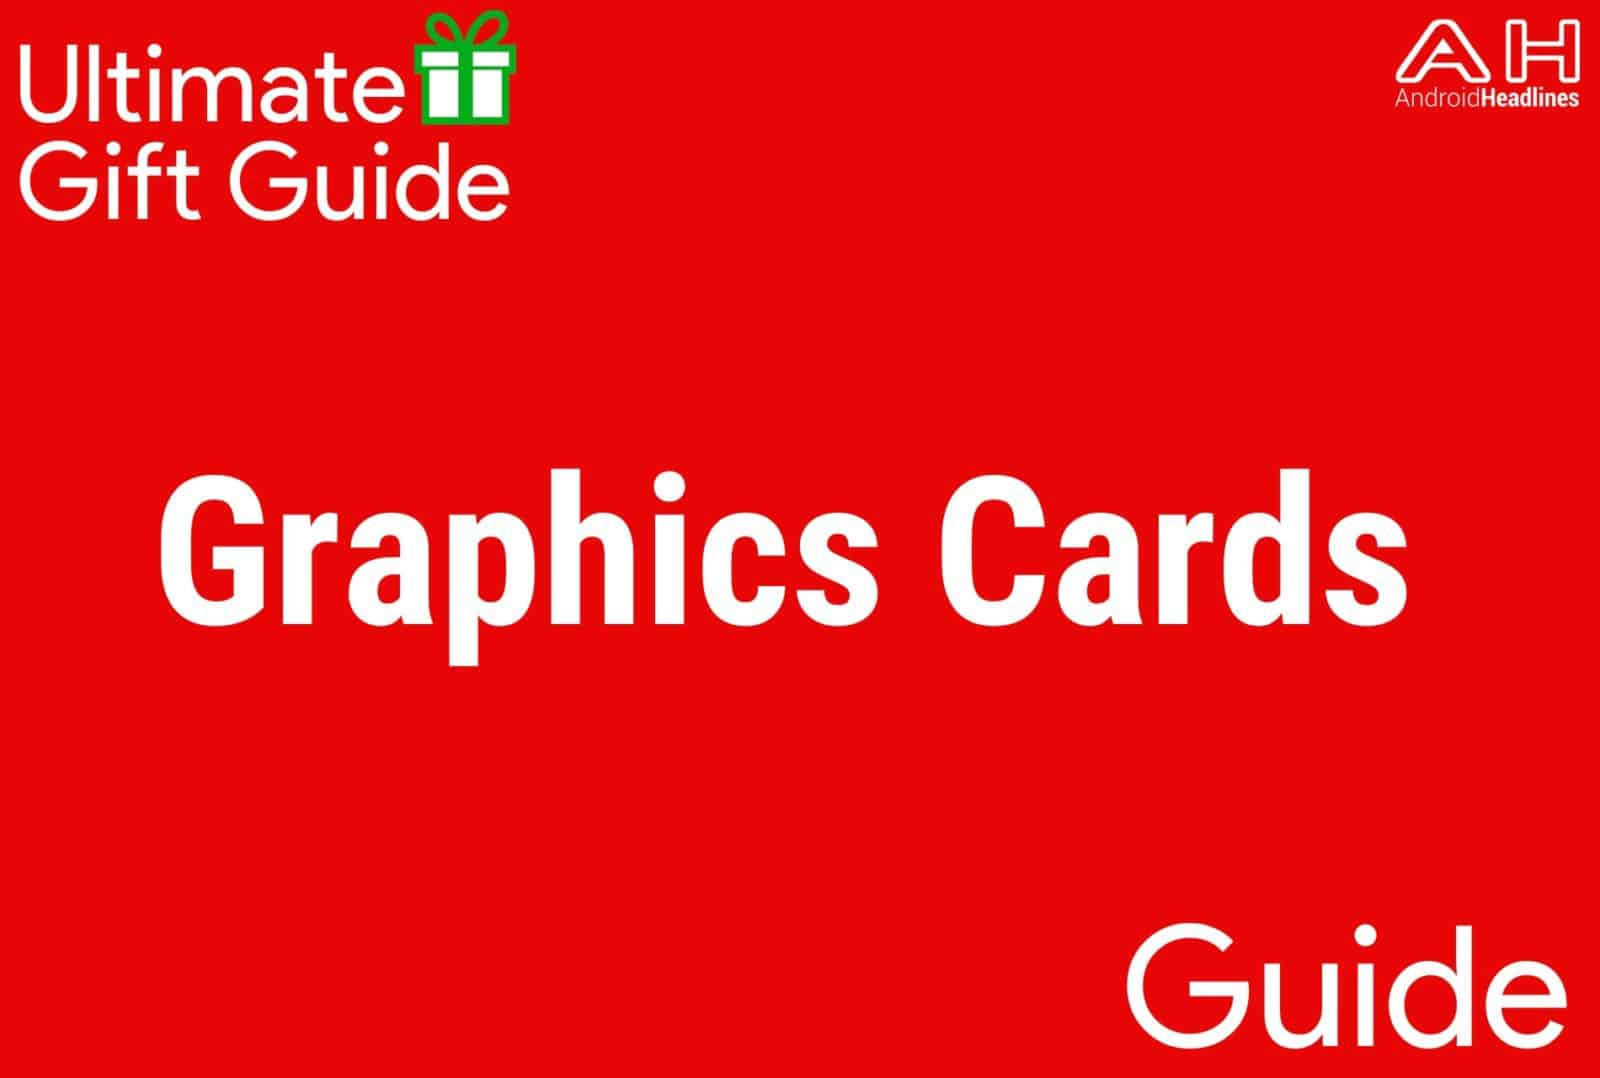 Graphics Cards - Gift Guide 2015-2016